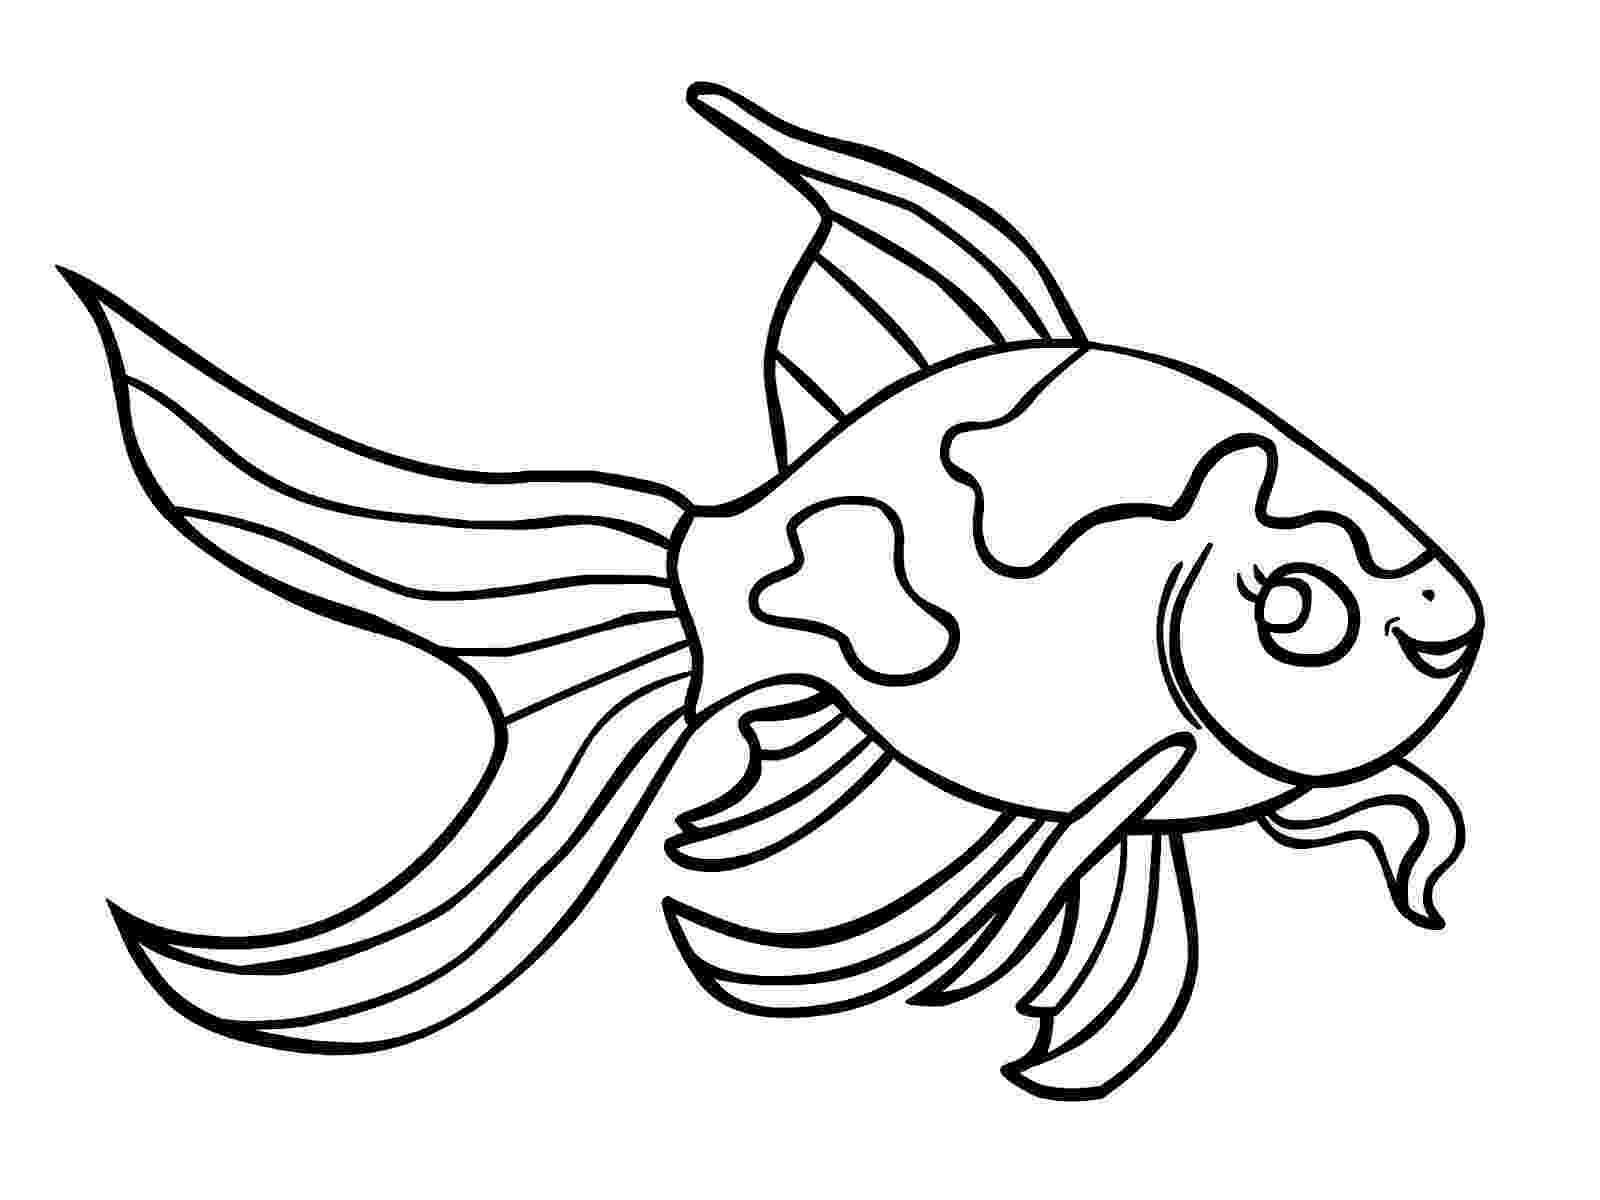 fish picture to color fish coloring pages for kids preschool and kindergarten fish picture to color